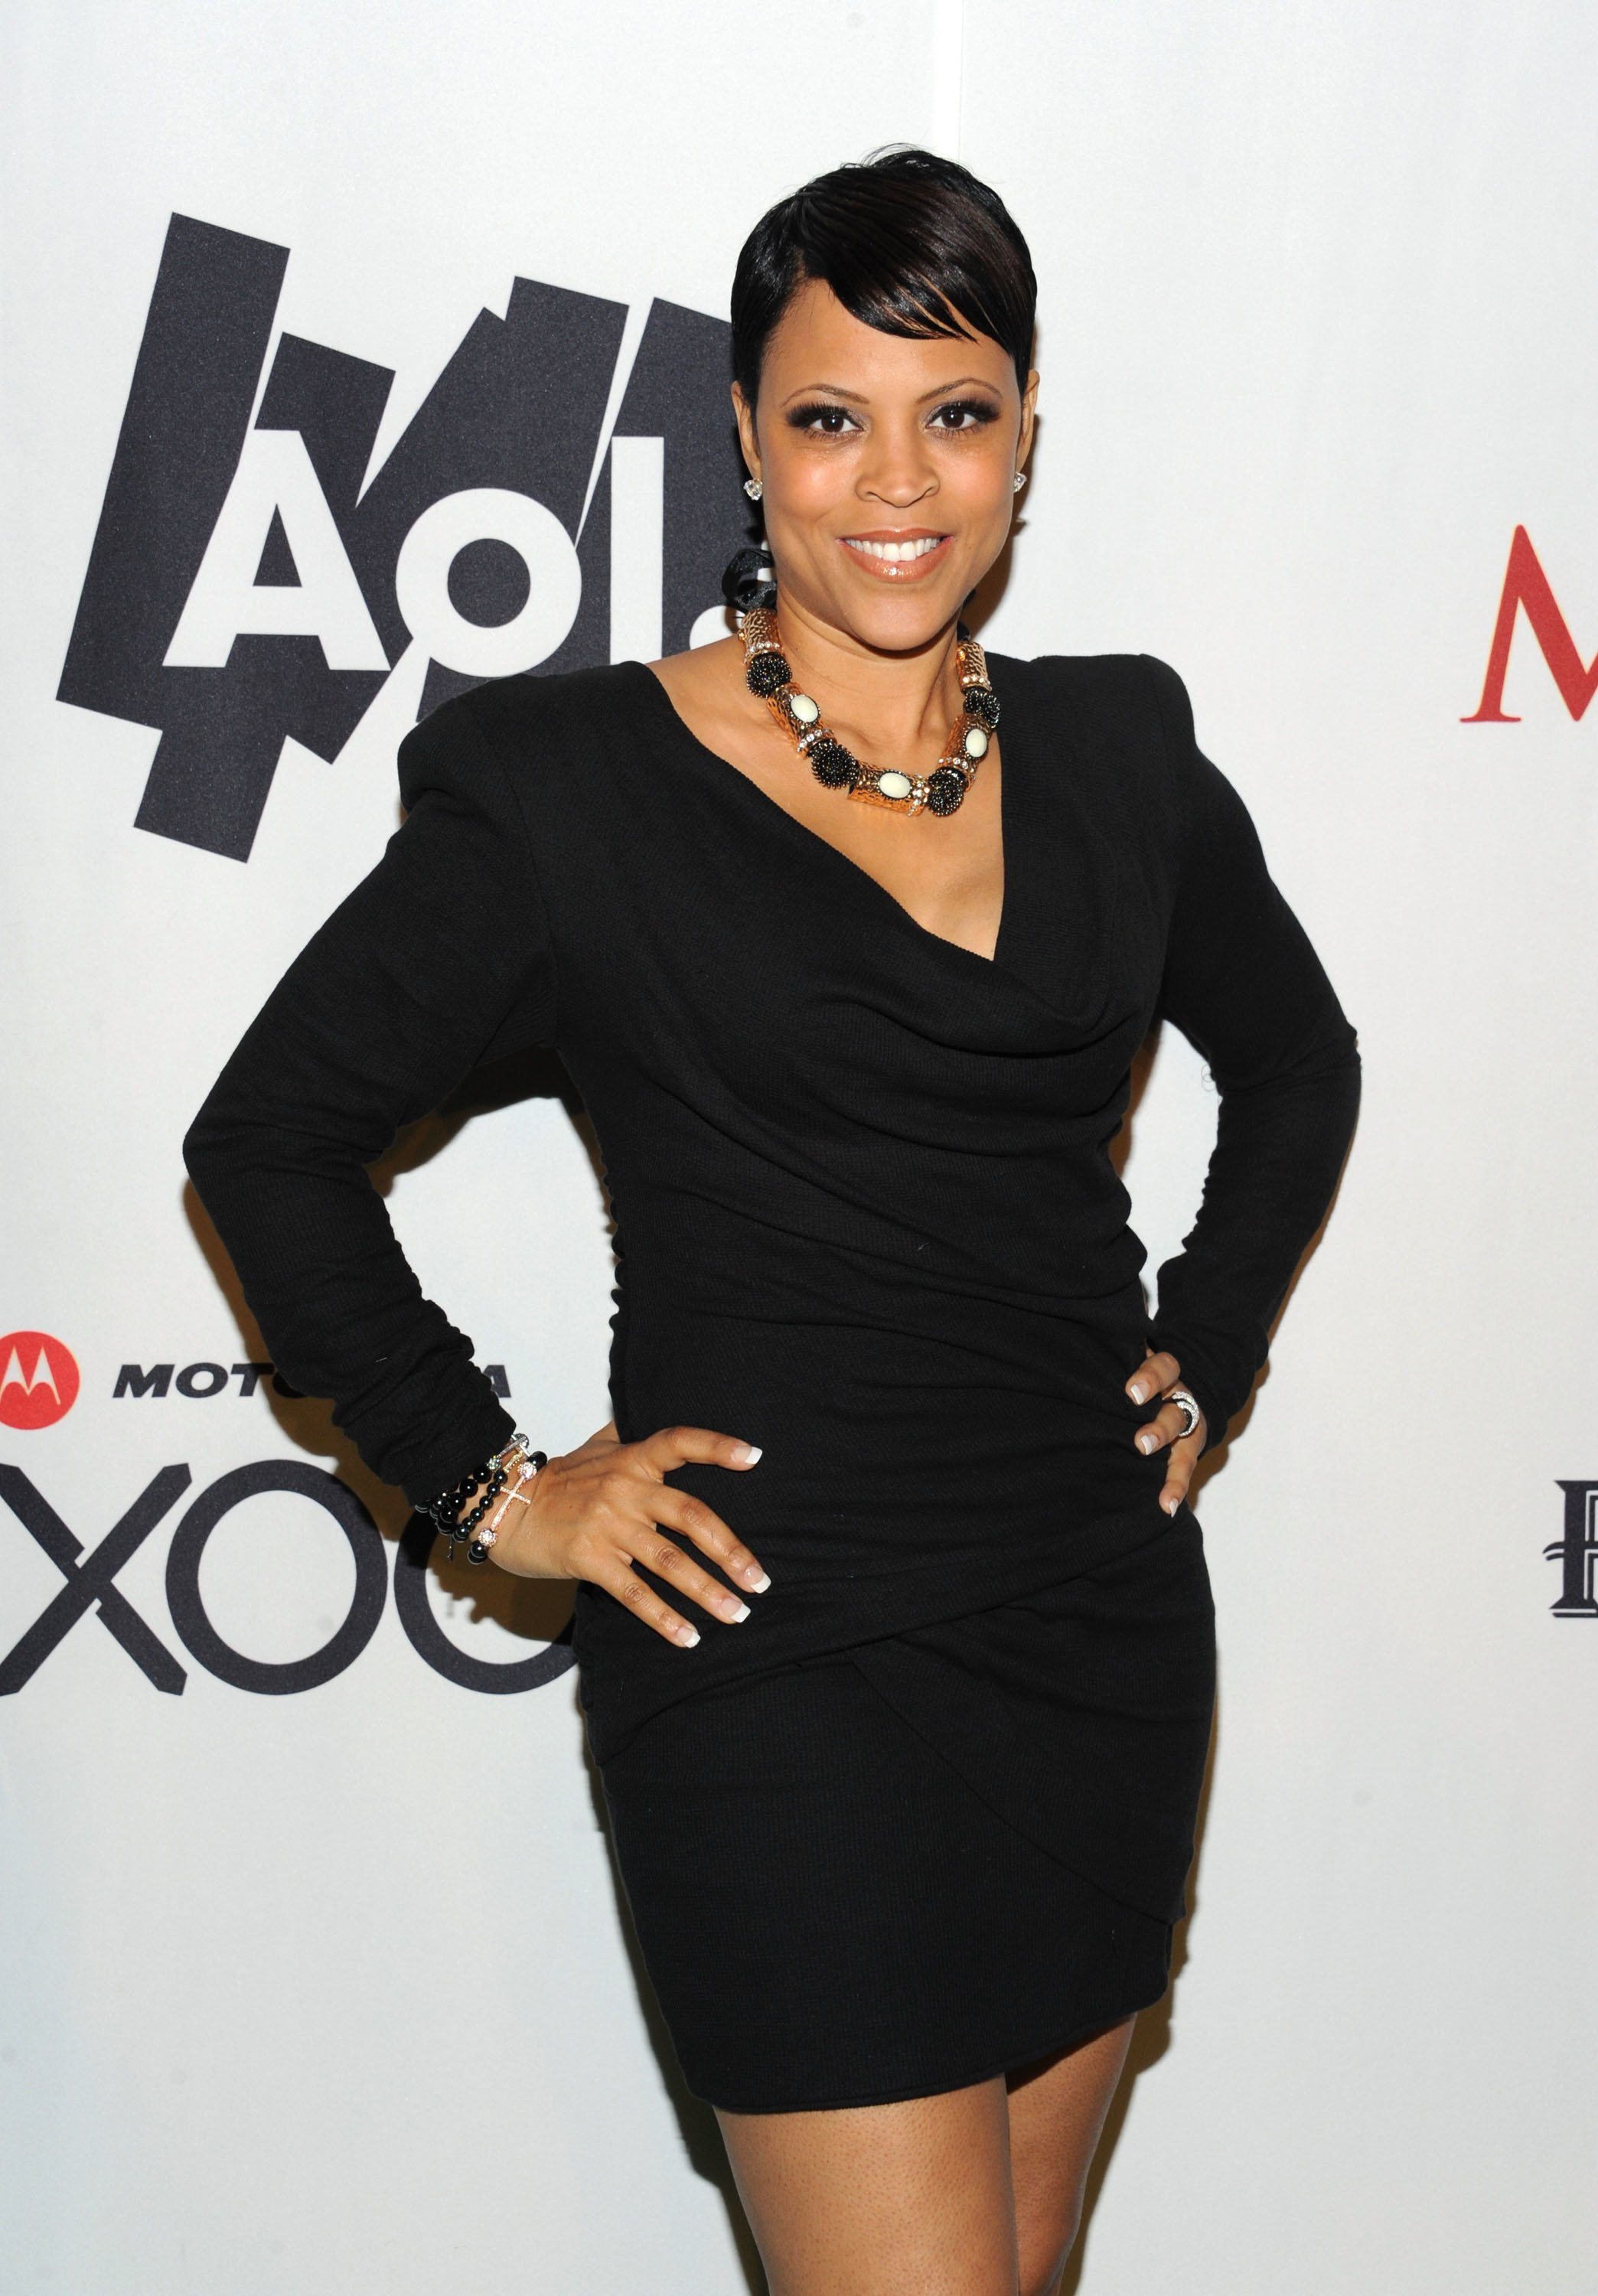 Shaunie O'Neal poses with AOL at the Maxim Party Powered by Motorola Xoom at Centennial Hall at Fair Park on February 5, 2011 in Dallas, Texas | Photo: Getty Images